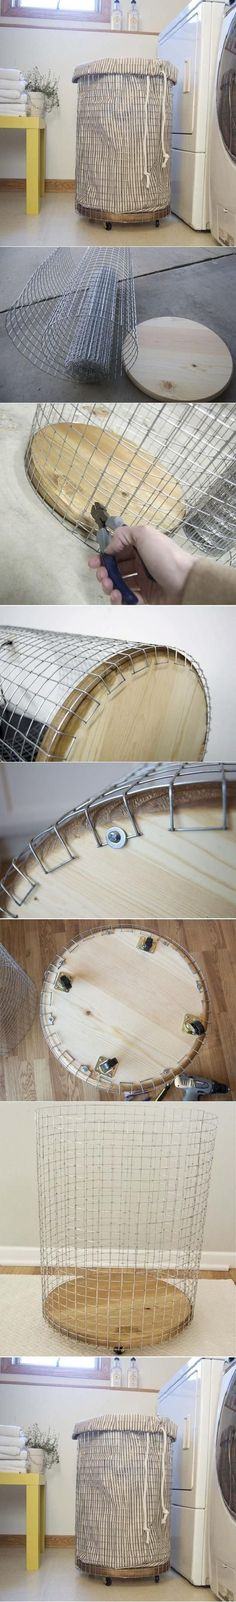 DIY wire hamper... Might have to make one since all the ones I like are super expensive